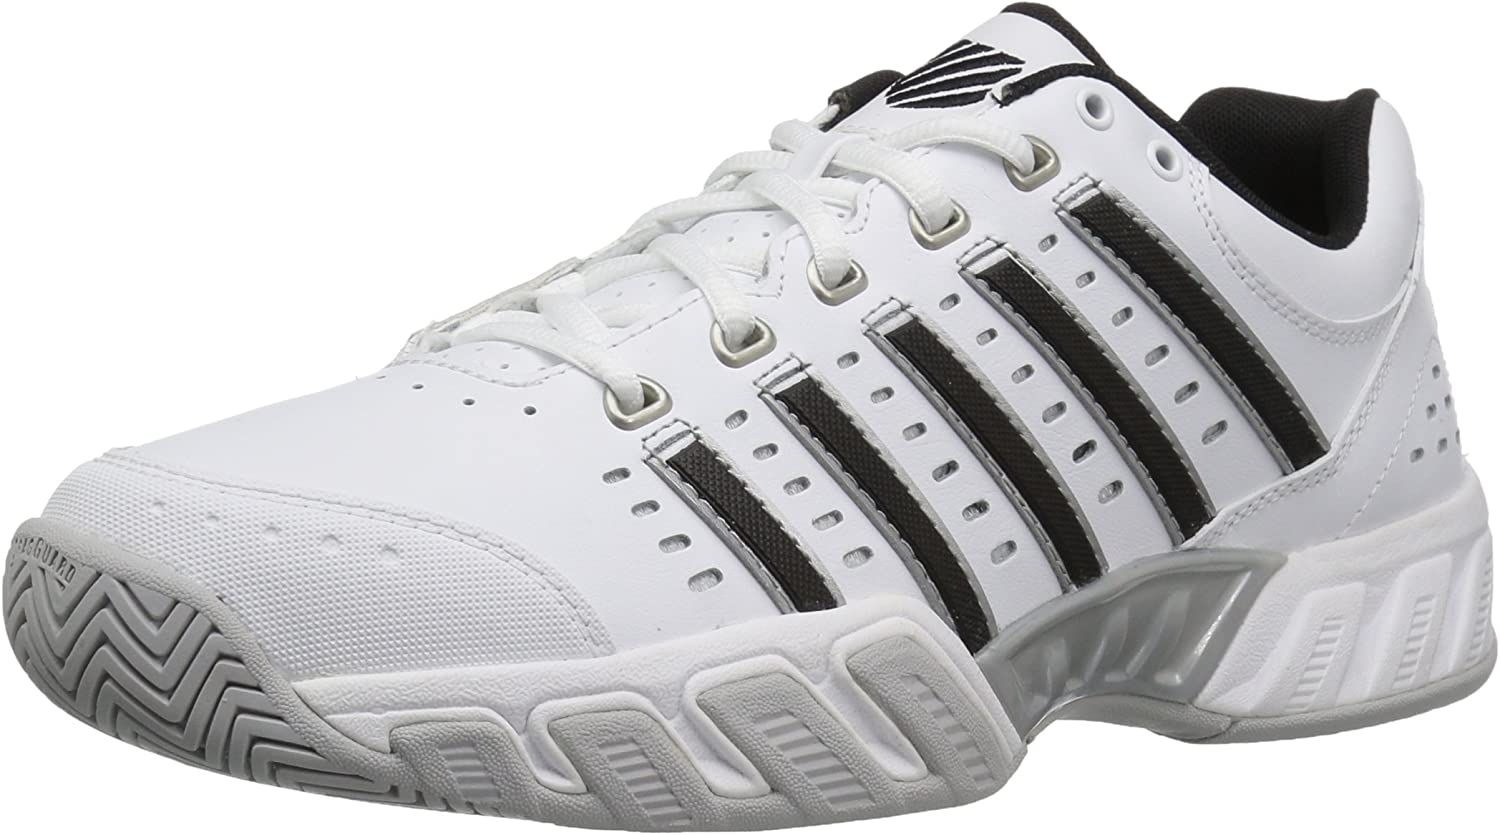 | K-SWISS Men's Bigshot Light Tennis Shoe | Tennis & Racquet Sports